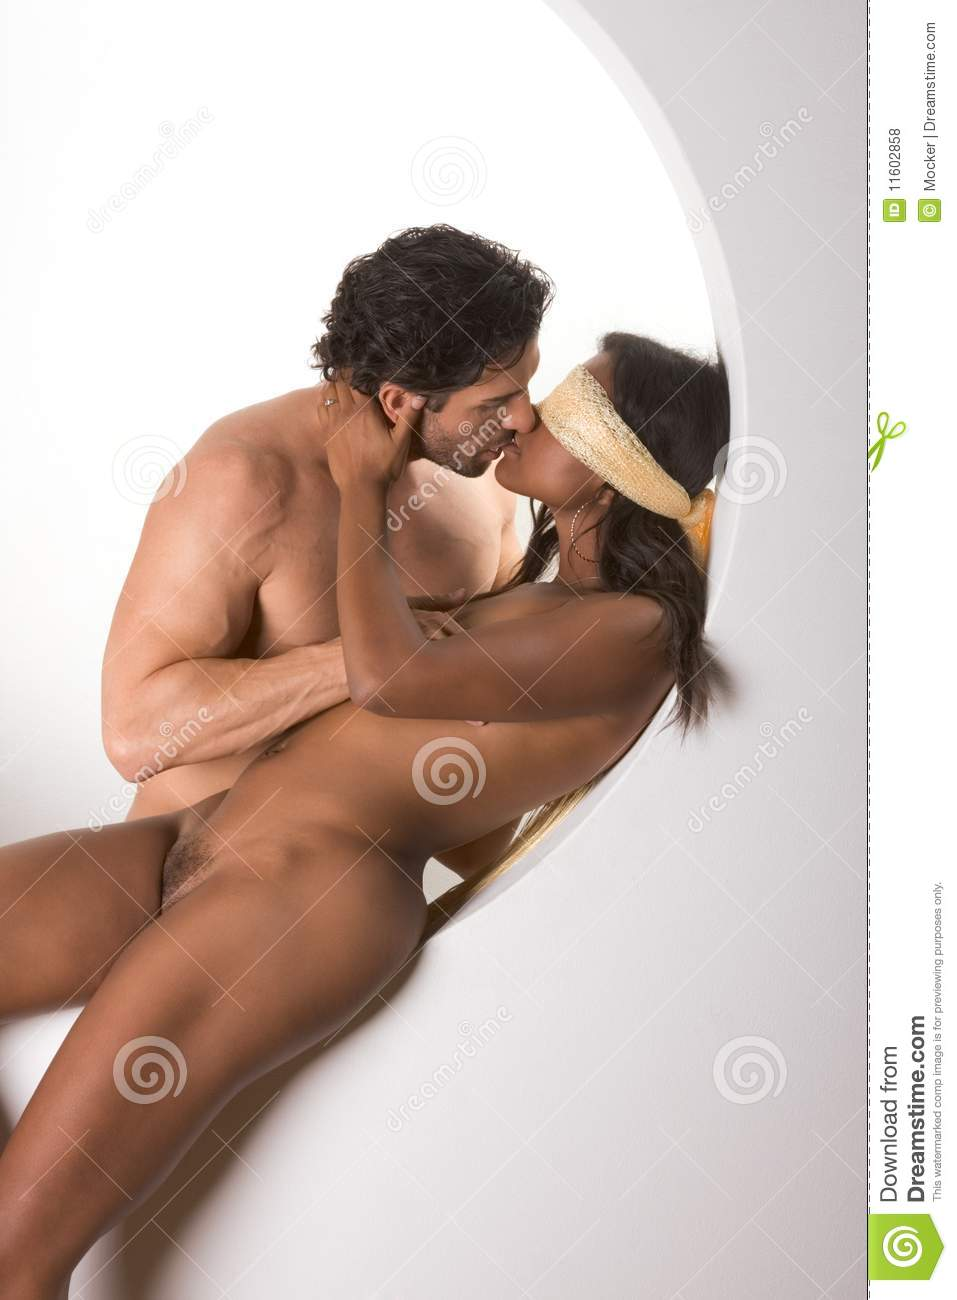 nude picter of men and women